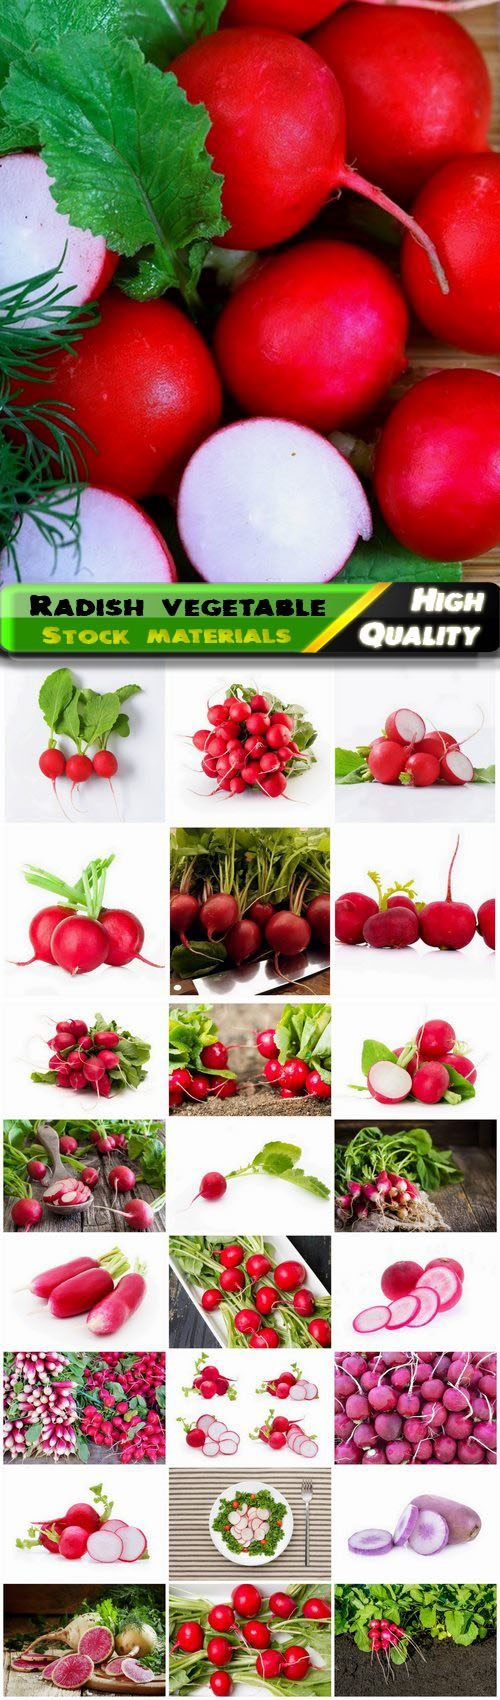 Radish vegetable from the genus Radish of Cabbage family 25 HQ Jpg